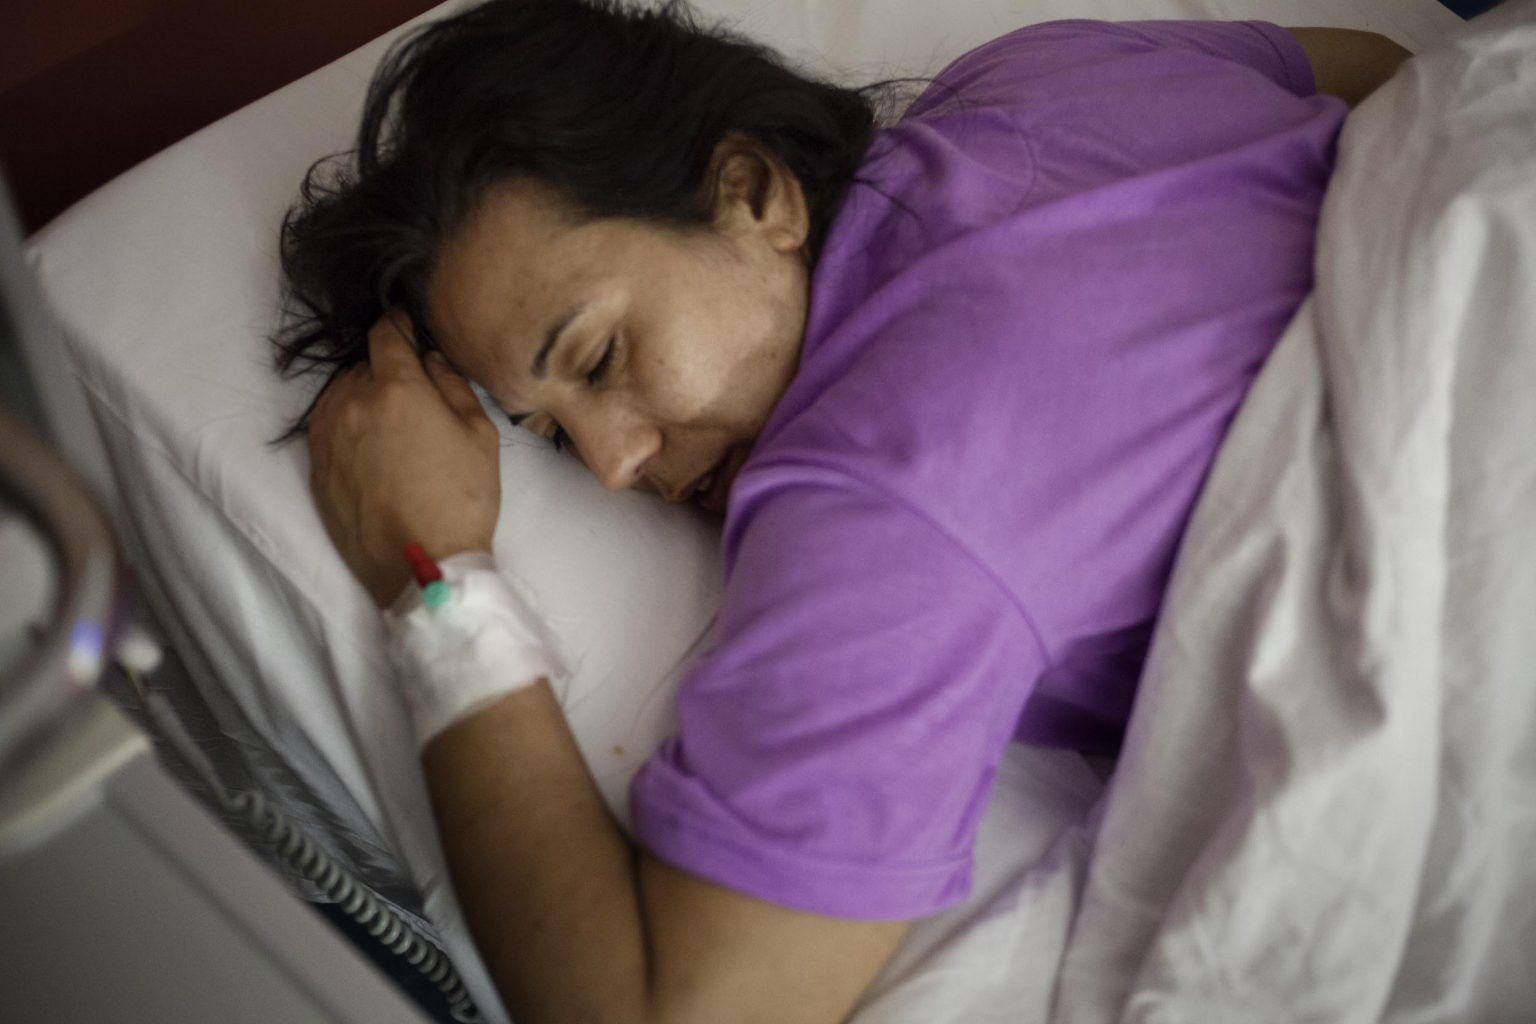 Claudia is in the hospital, after a violent fight with Emilano she had a miscarriage and lost the baby she was carring.